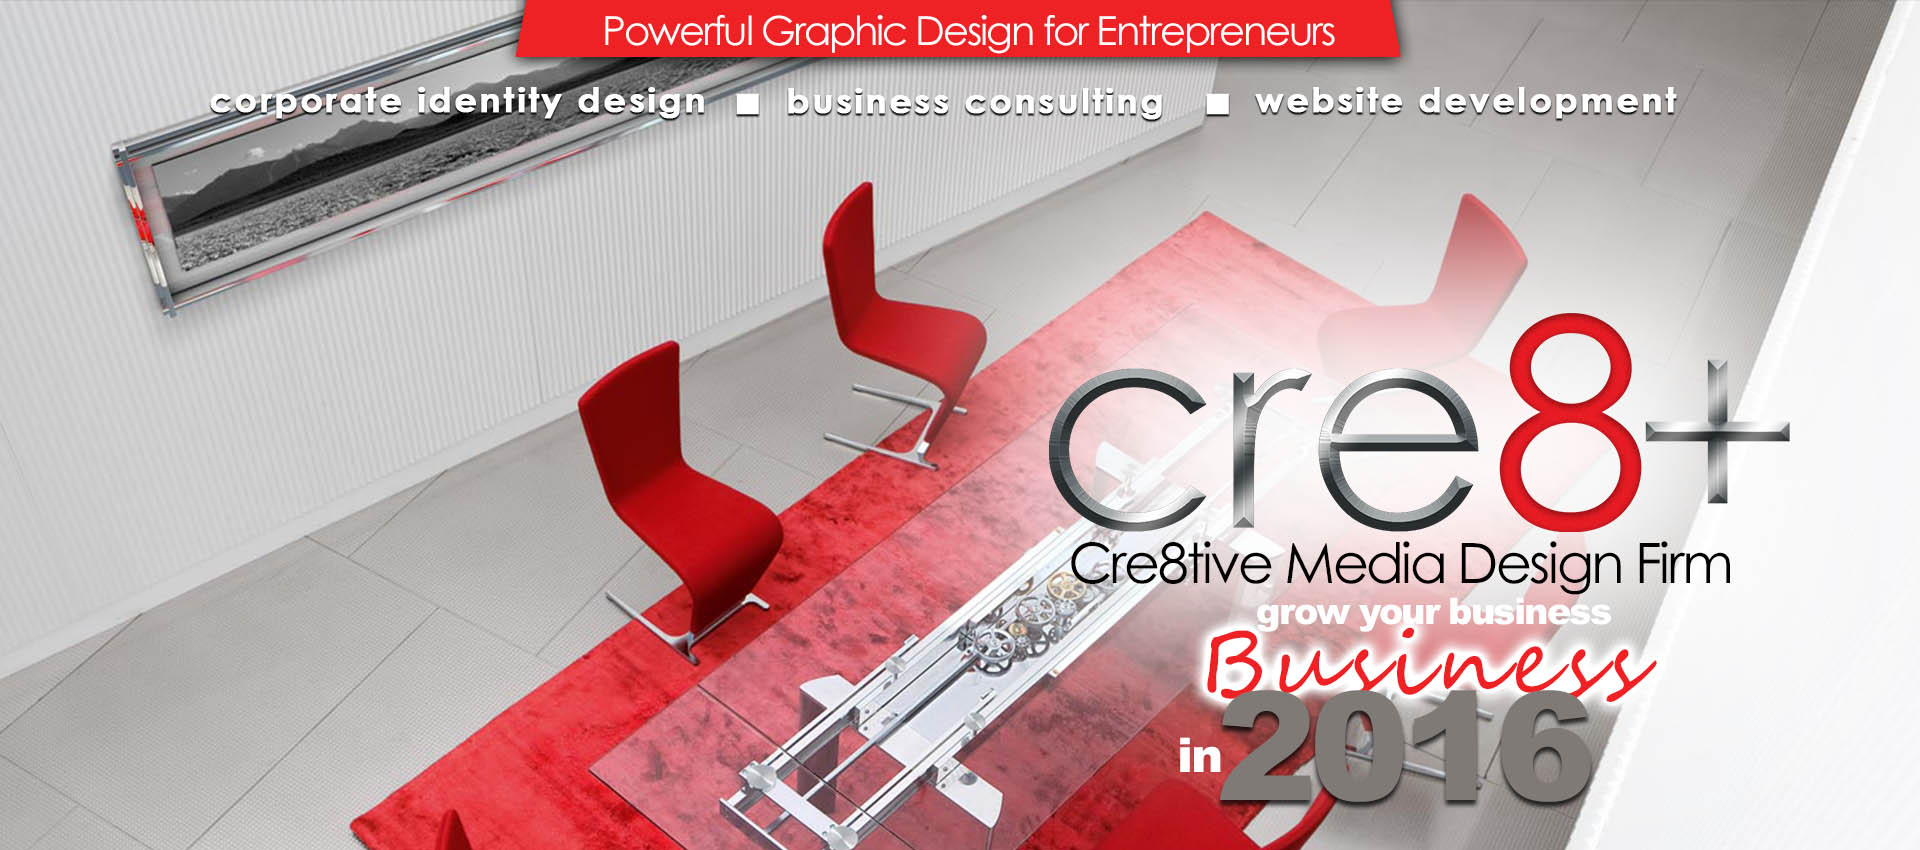 Cre8+ More Opportunities to Connect with Cre8tive Media